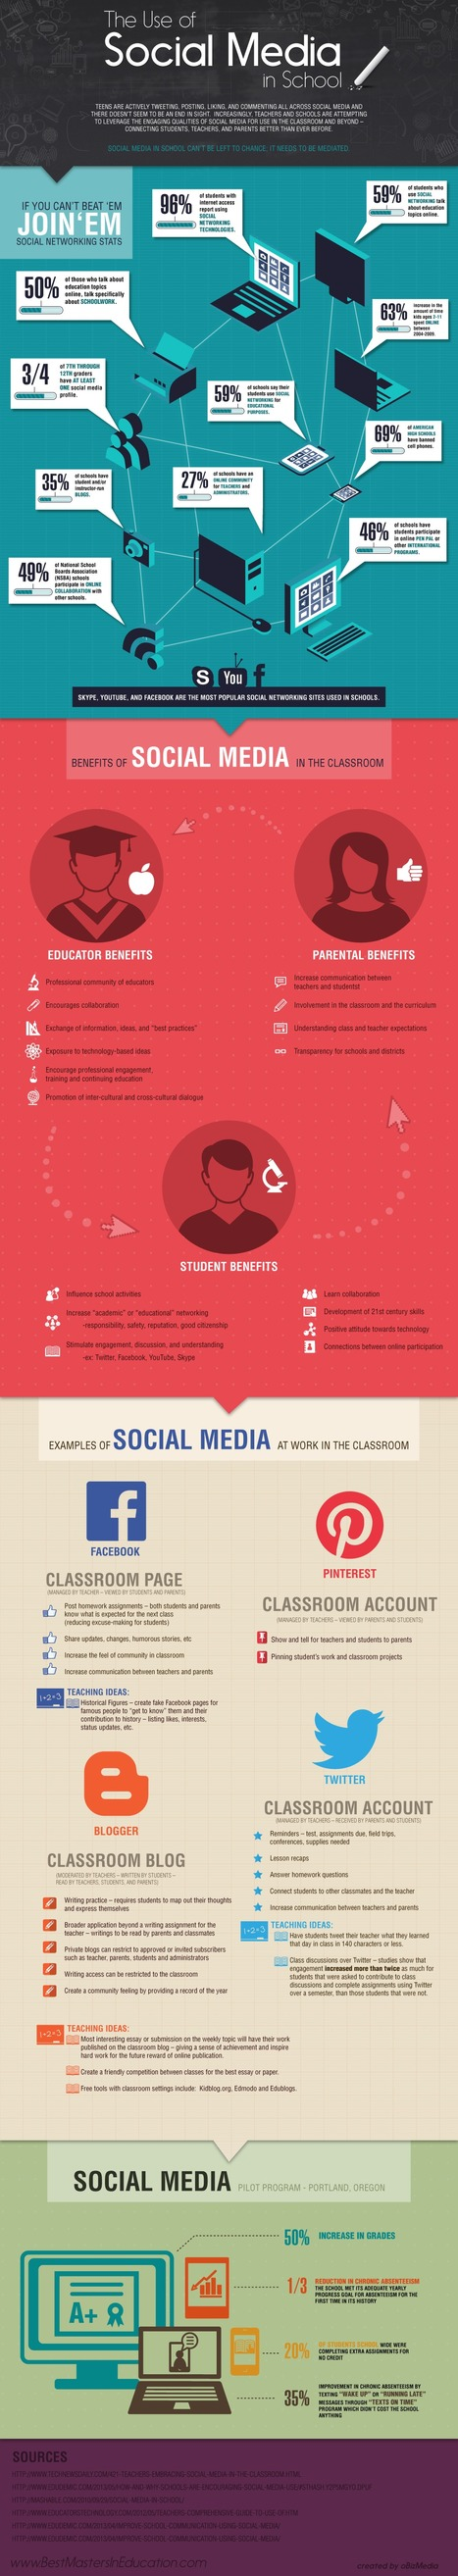 "Social Media 101: Is There a Place For Social Media in Classrooms? [Infographic] | L'impresa ""mobile"" 